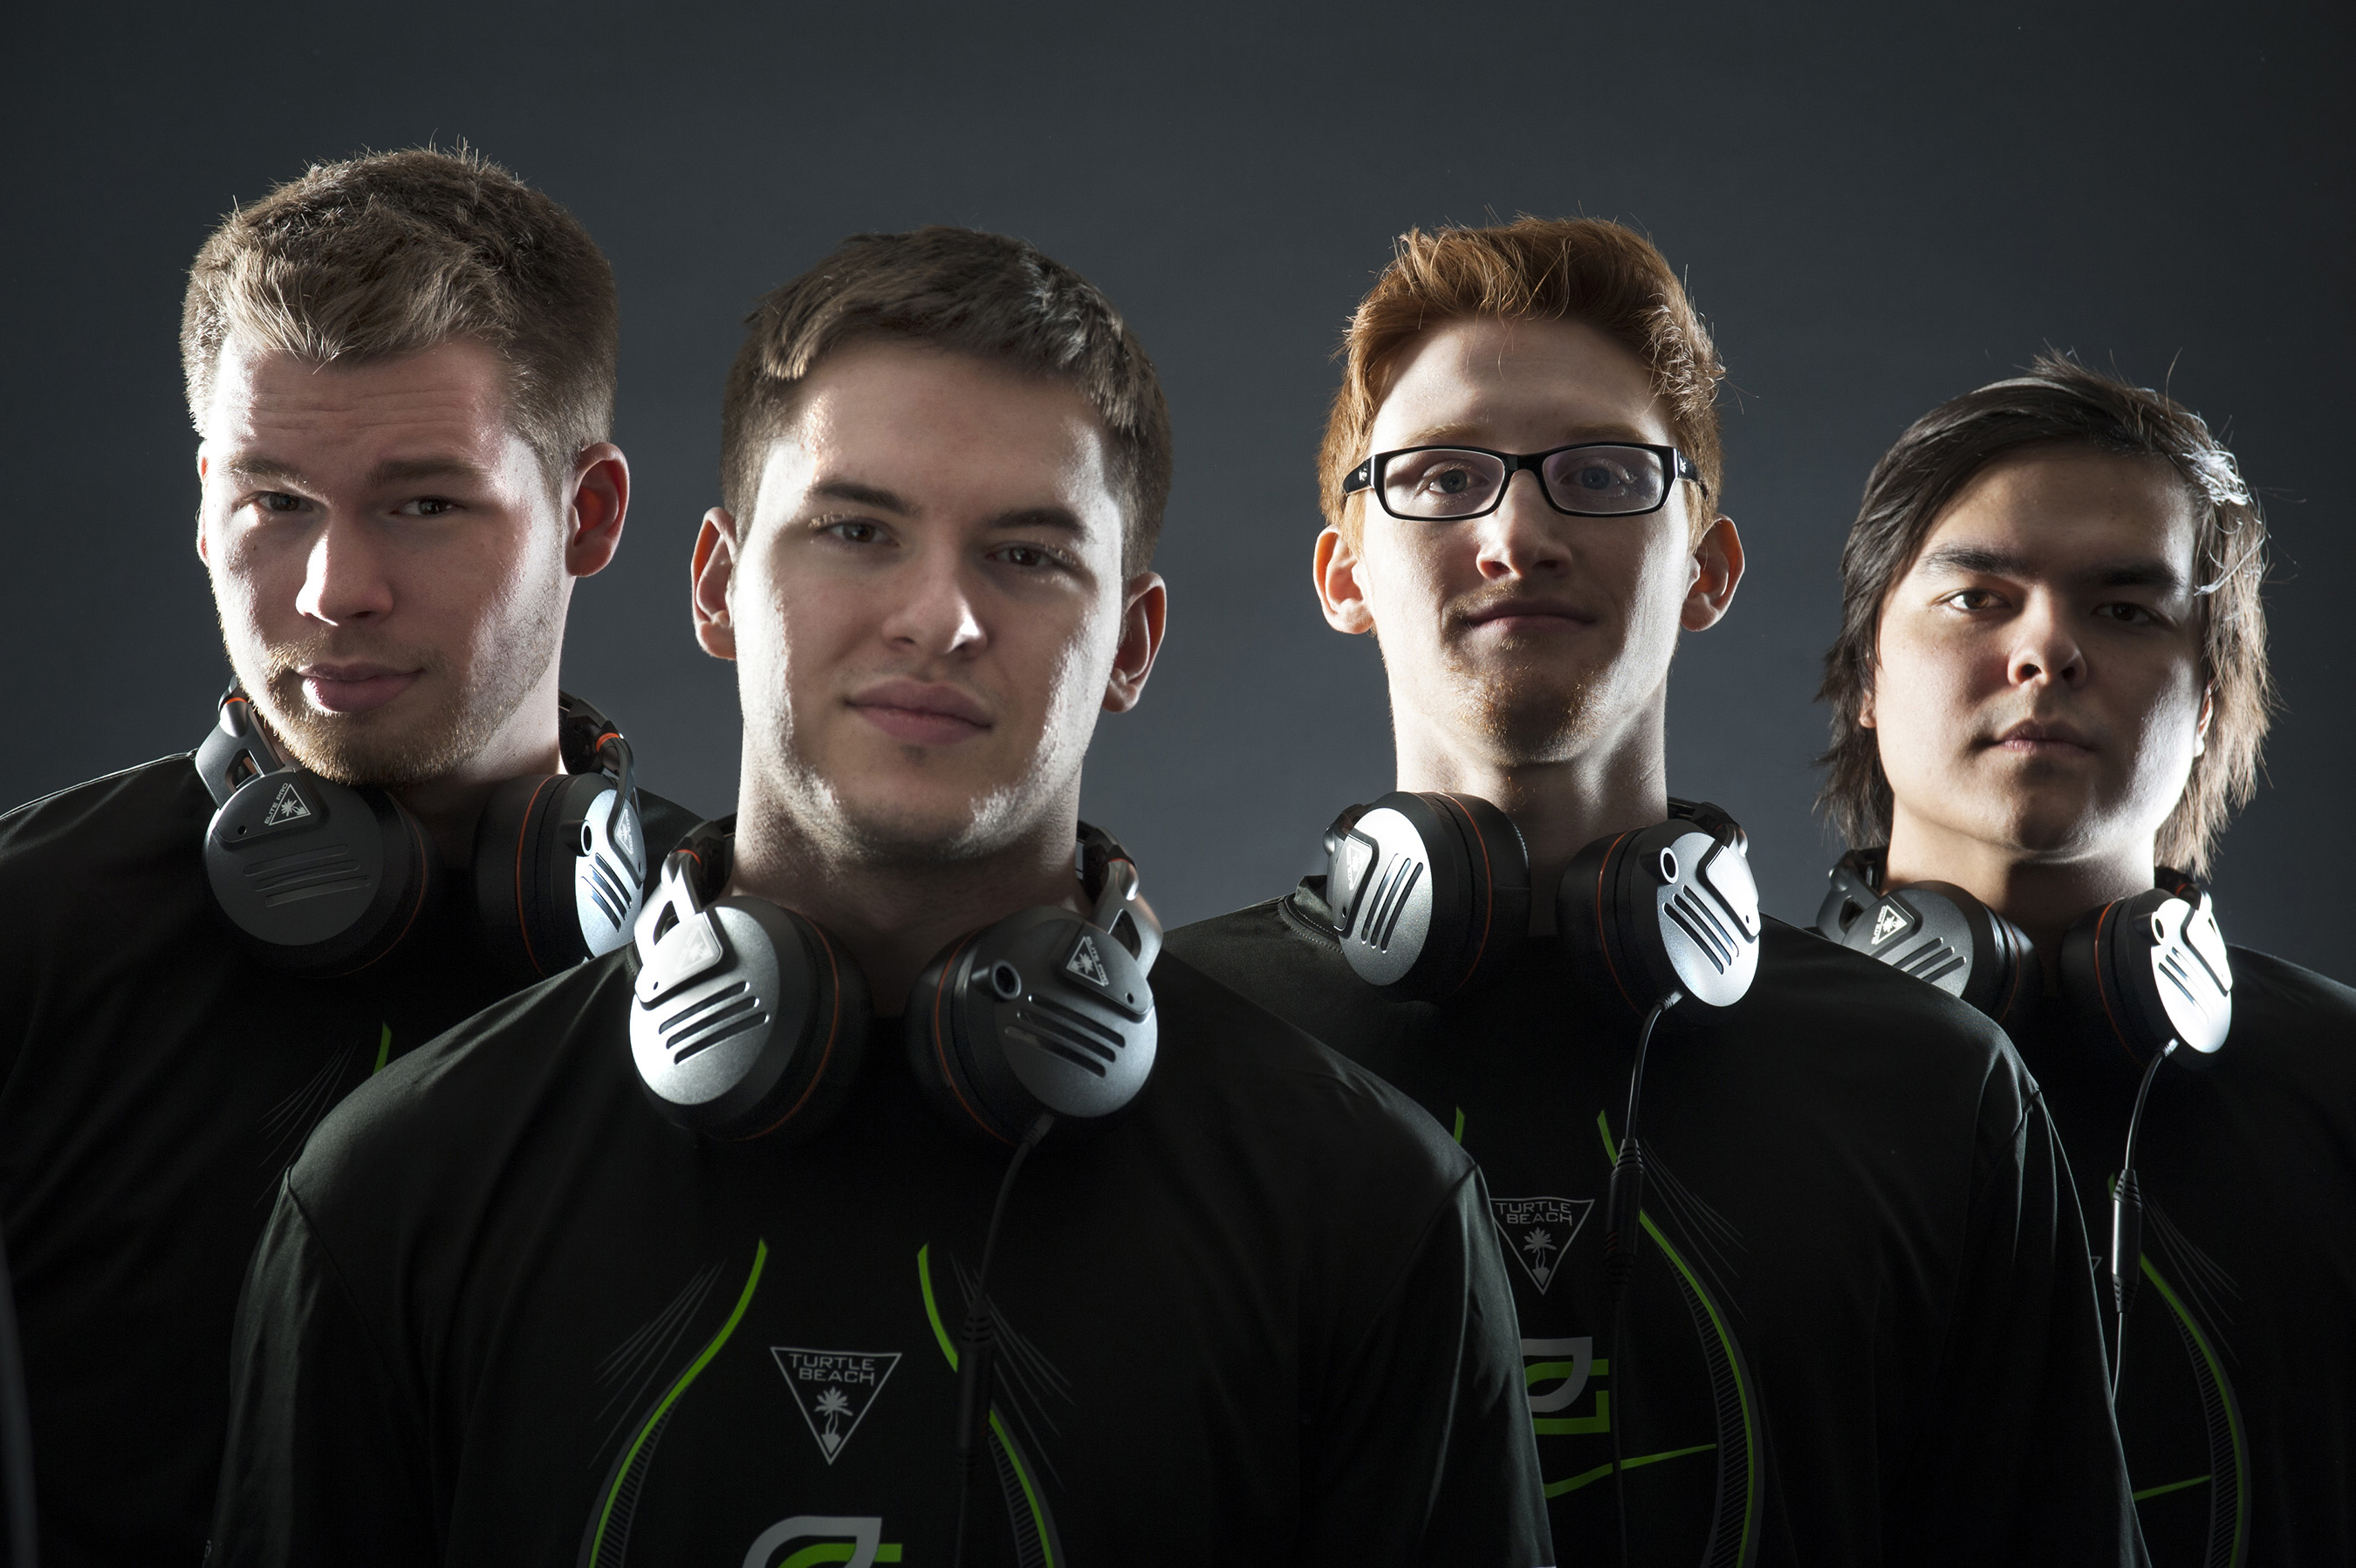 TURTLE BEACH REINVENTS ESPORTS GAMING HEADSETS WITH THE ELITE PRO A NEW BENCHMARK FOR